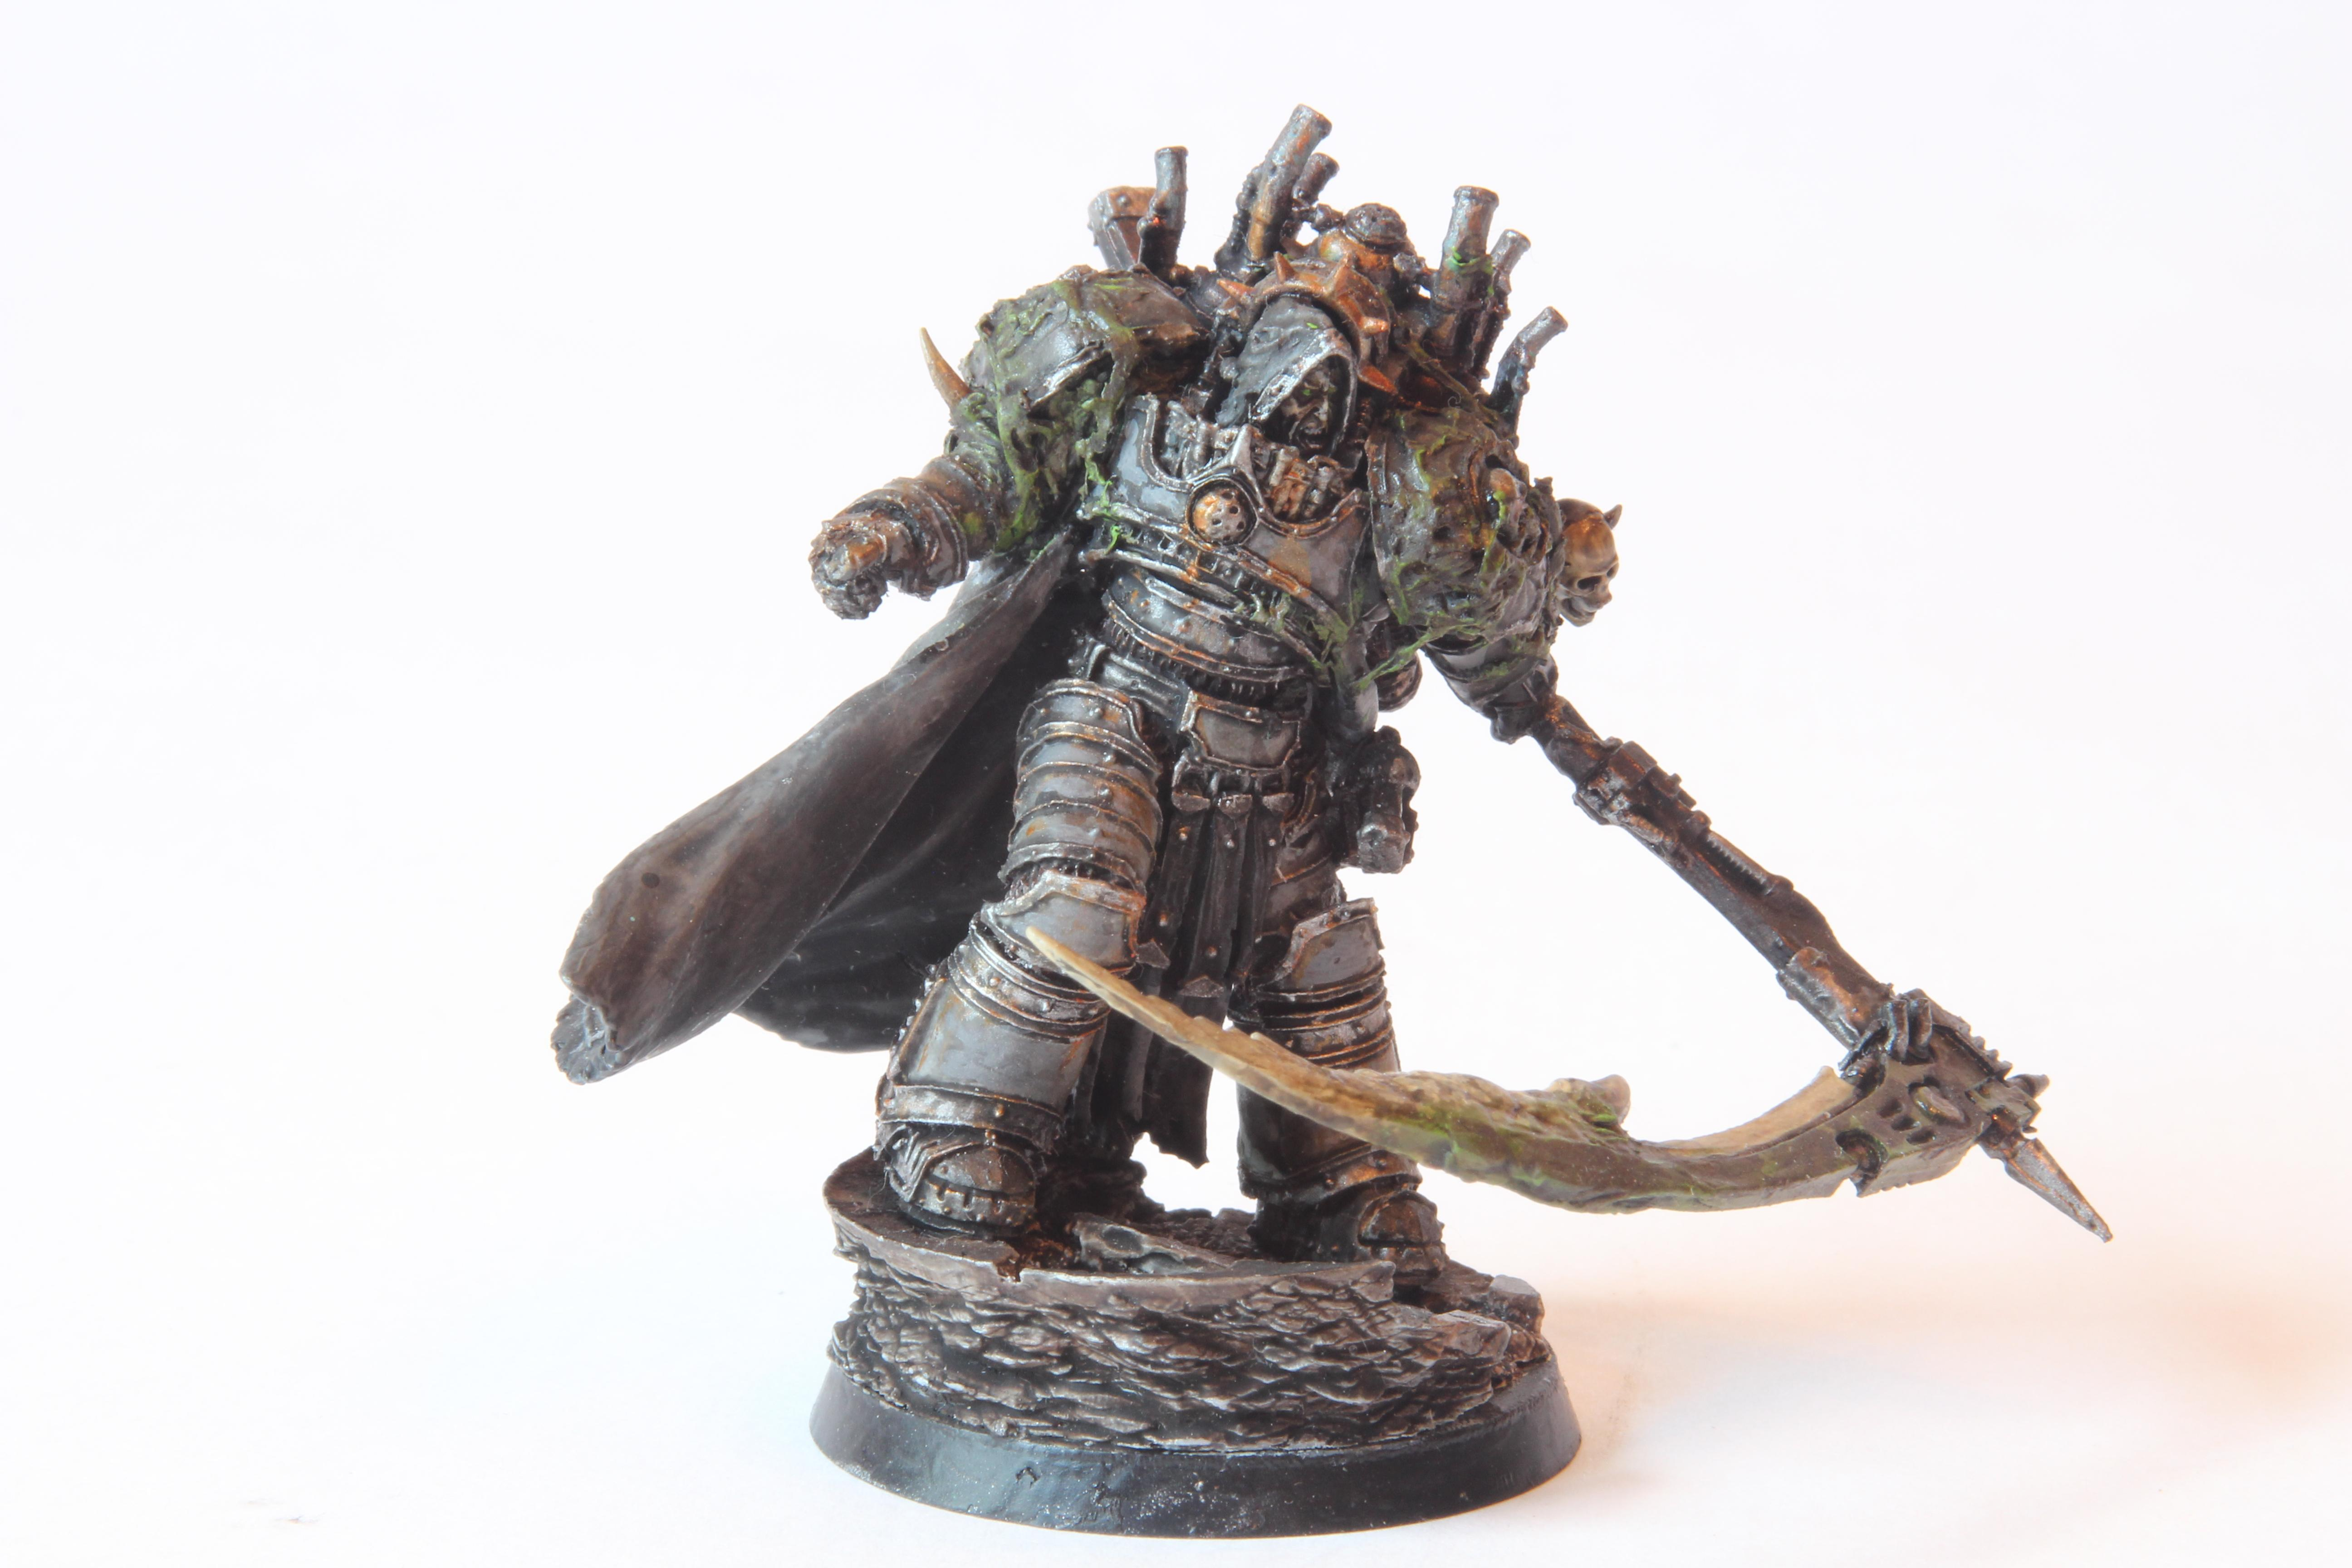 14th Legion, 30k, Barbarn Plate, Conversion, Count The Seven, Death Guard, Death Lord, First Son Of Nurgle, Forge World, Greenstuff, Horus Heresy, Lord Of Barbarous, Mortarion, Nurgle, Primarch, Prince Of Decay, Reaper, Silence, Skull, Warhammer Fantasy